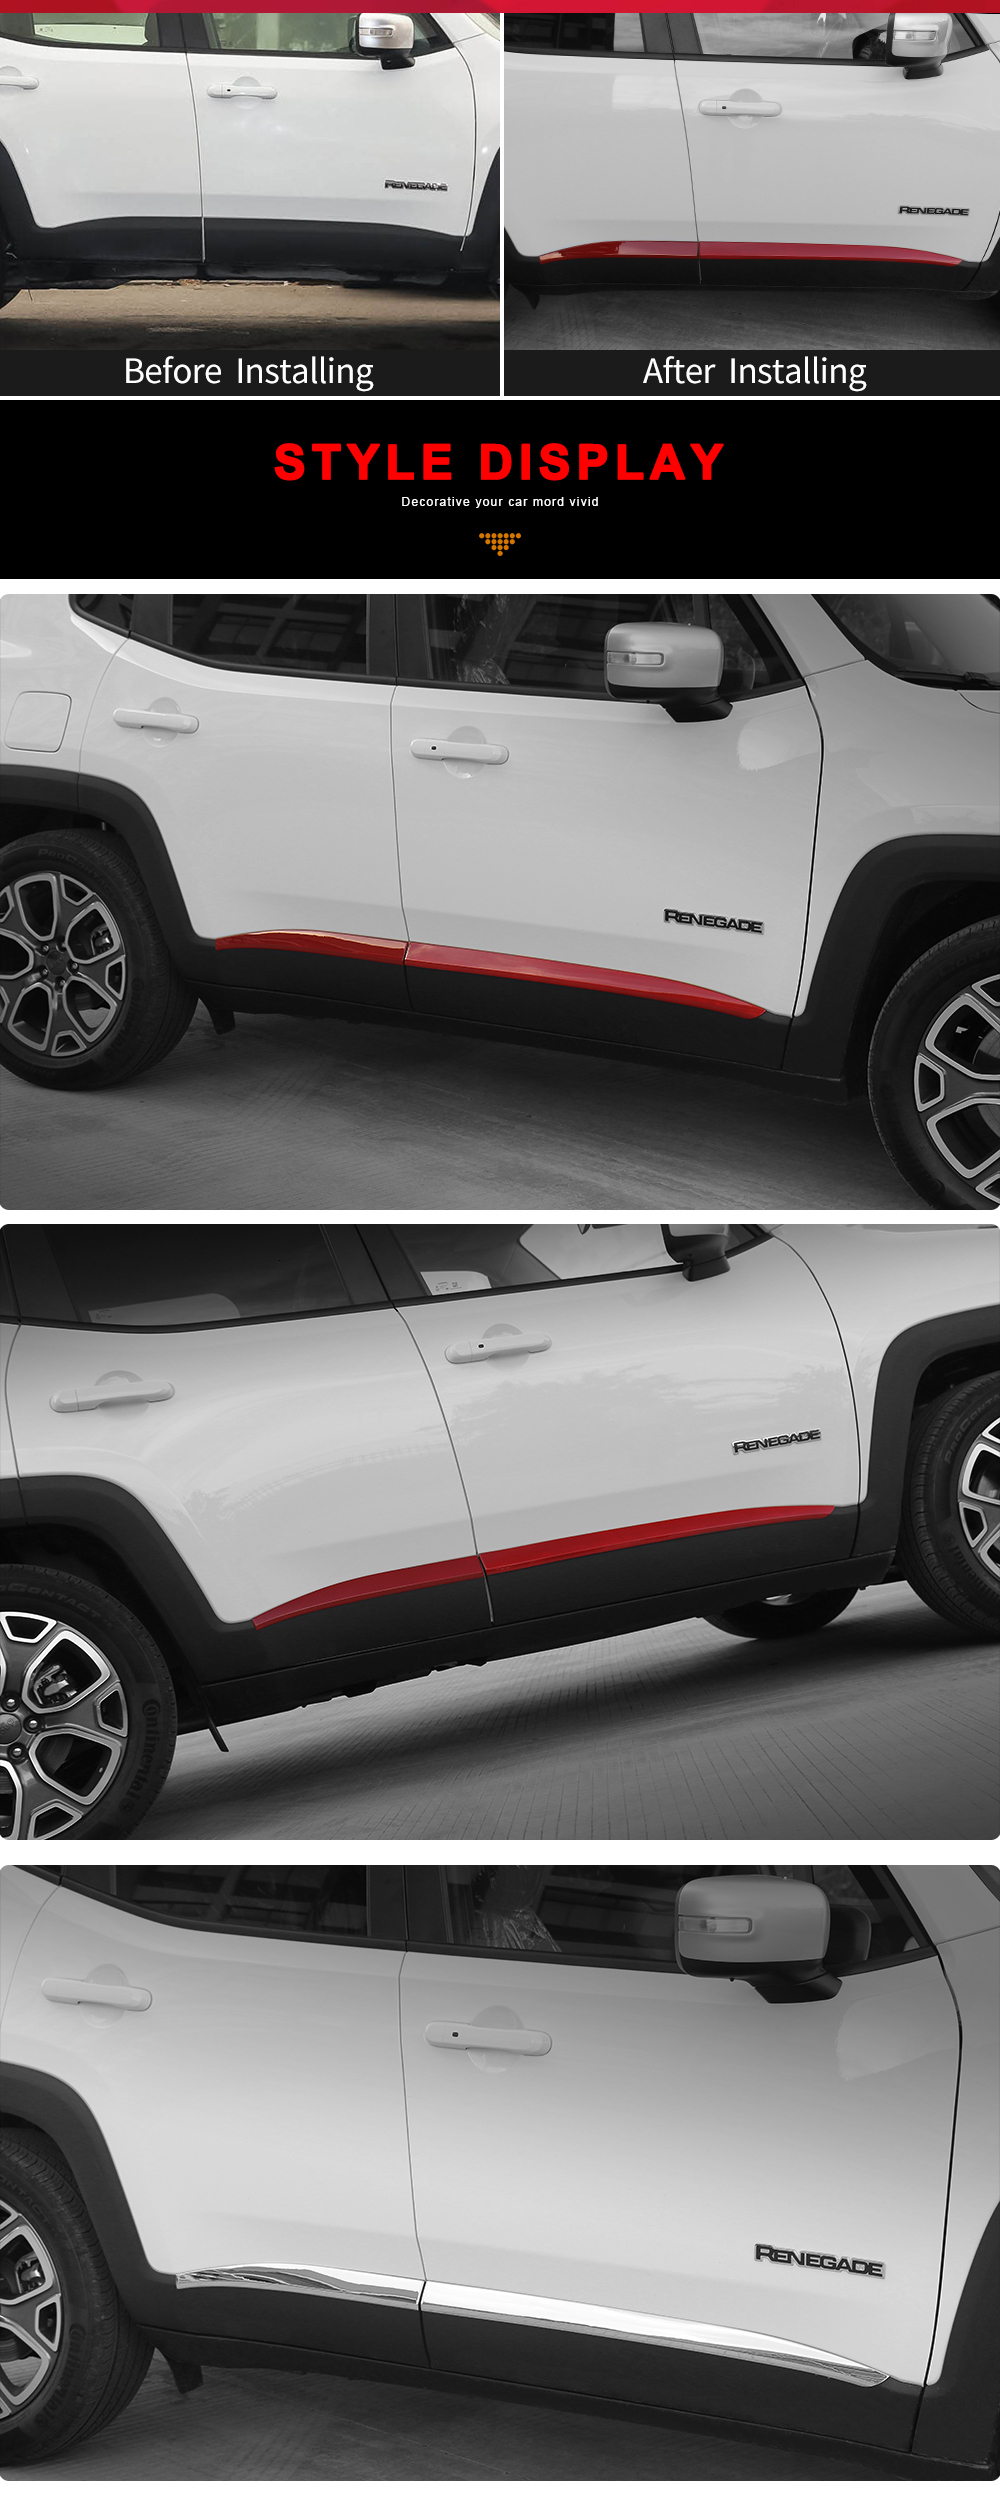 2*White ABS Trunk Sundry Net String Bag Frame Trim For Jeep Renegade 2015-2018